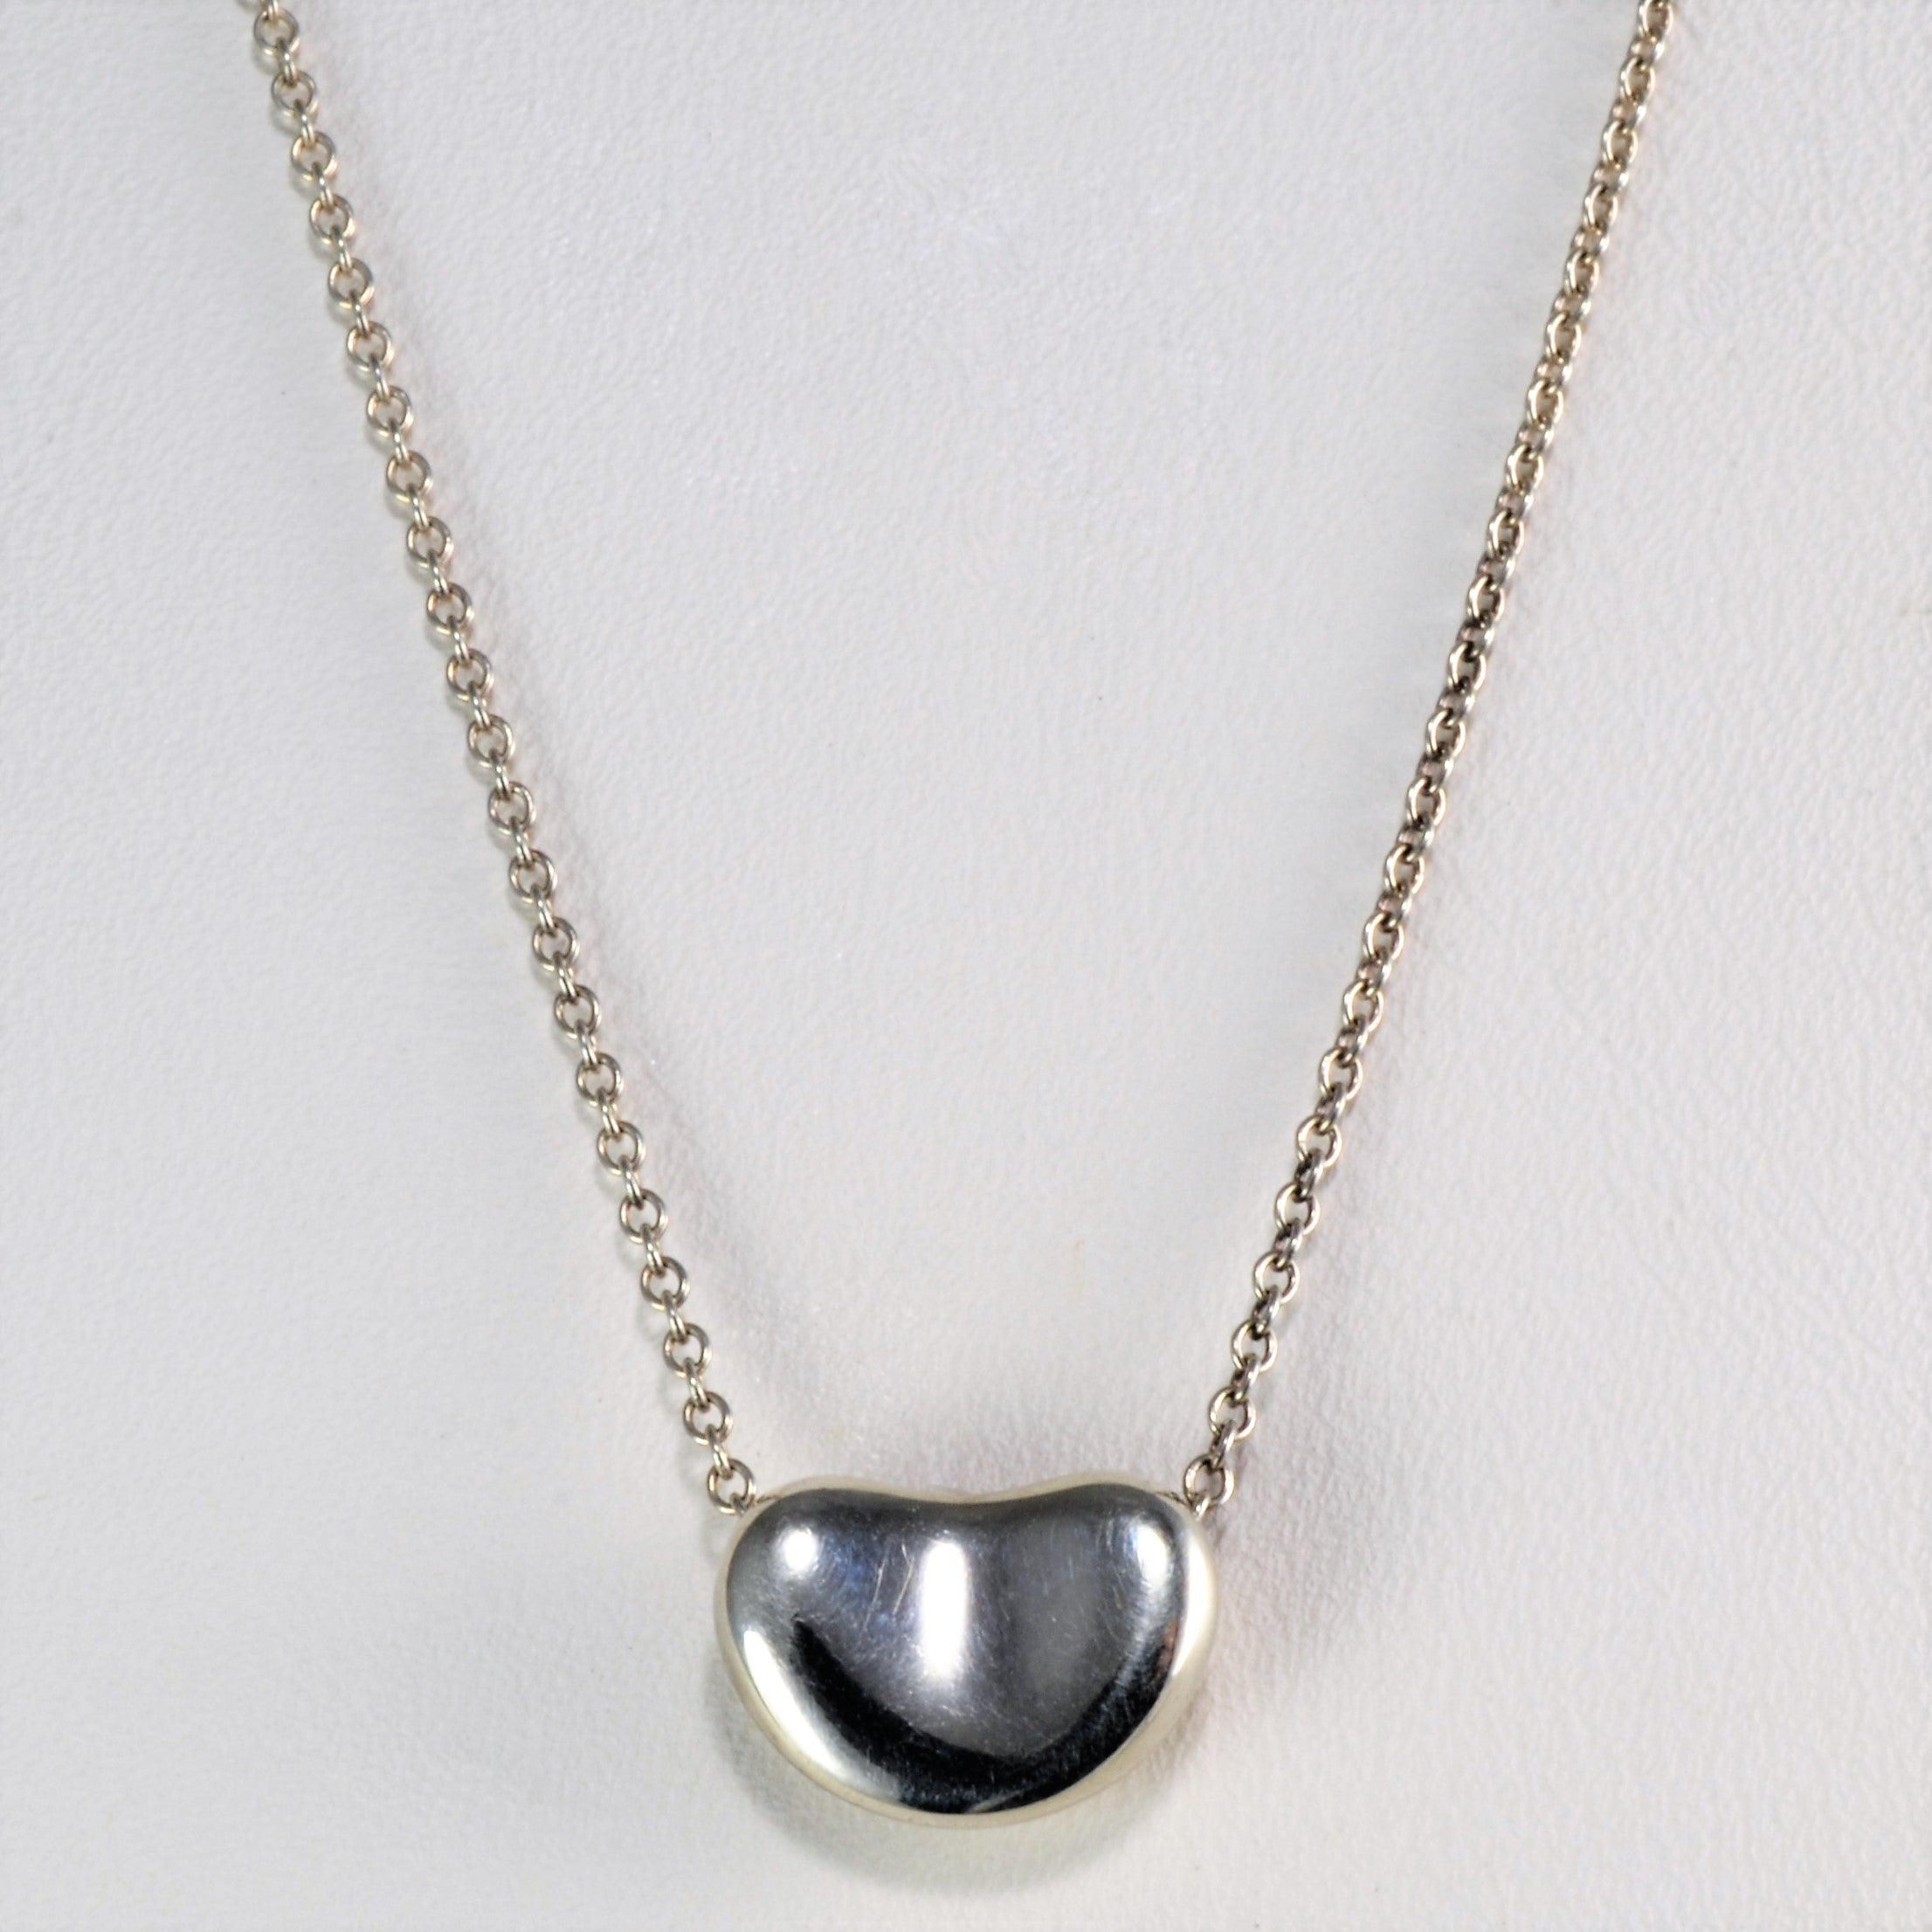 Tiffany & Co. Sterling Silver Elsa Peretti Pendant Necklace | 16''|